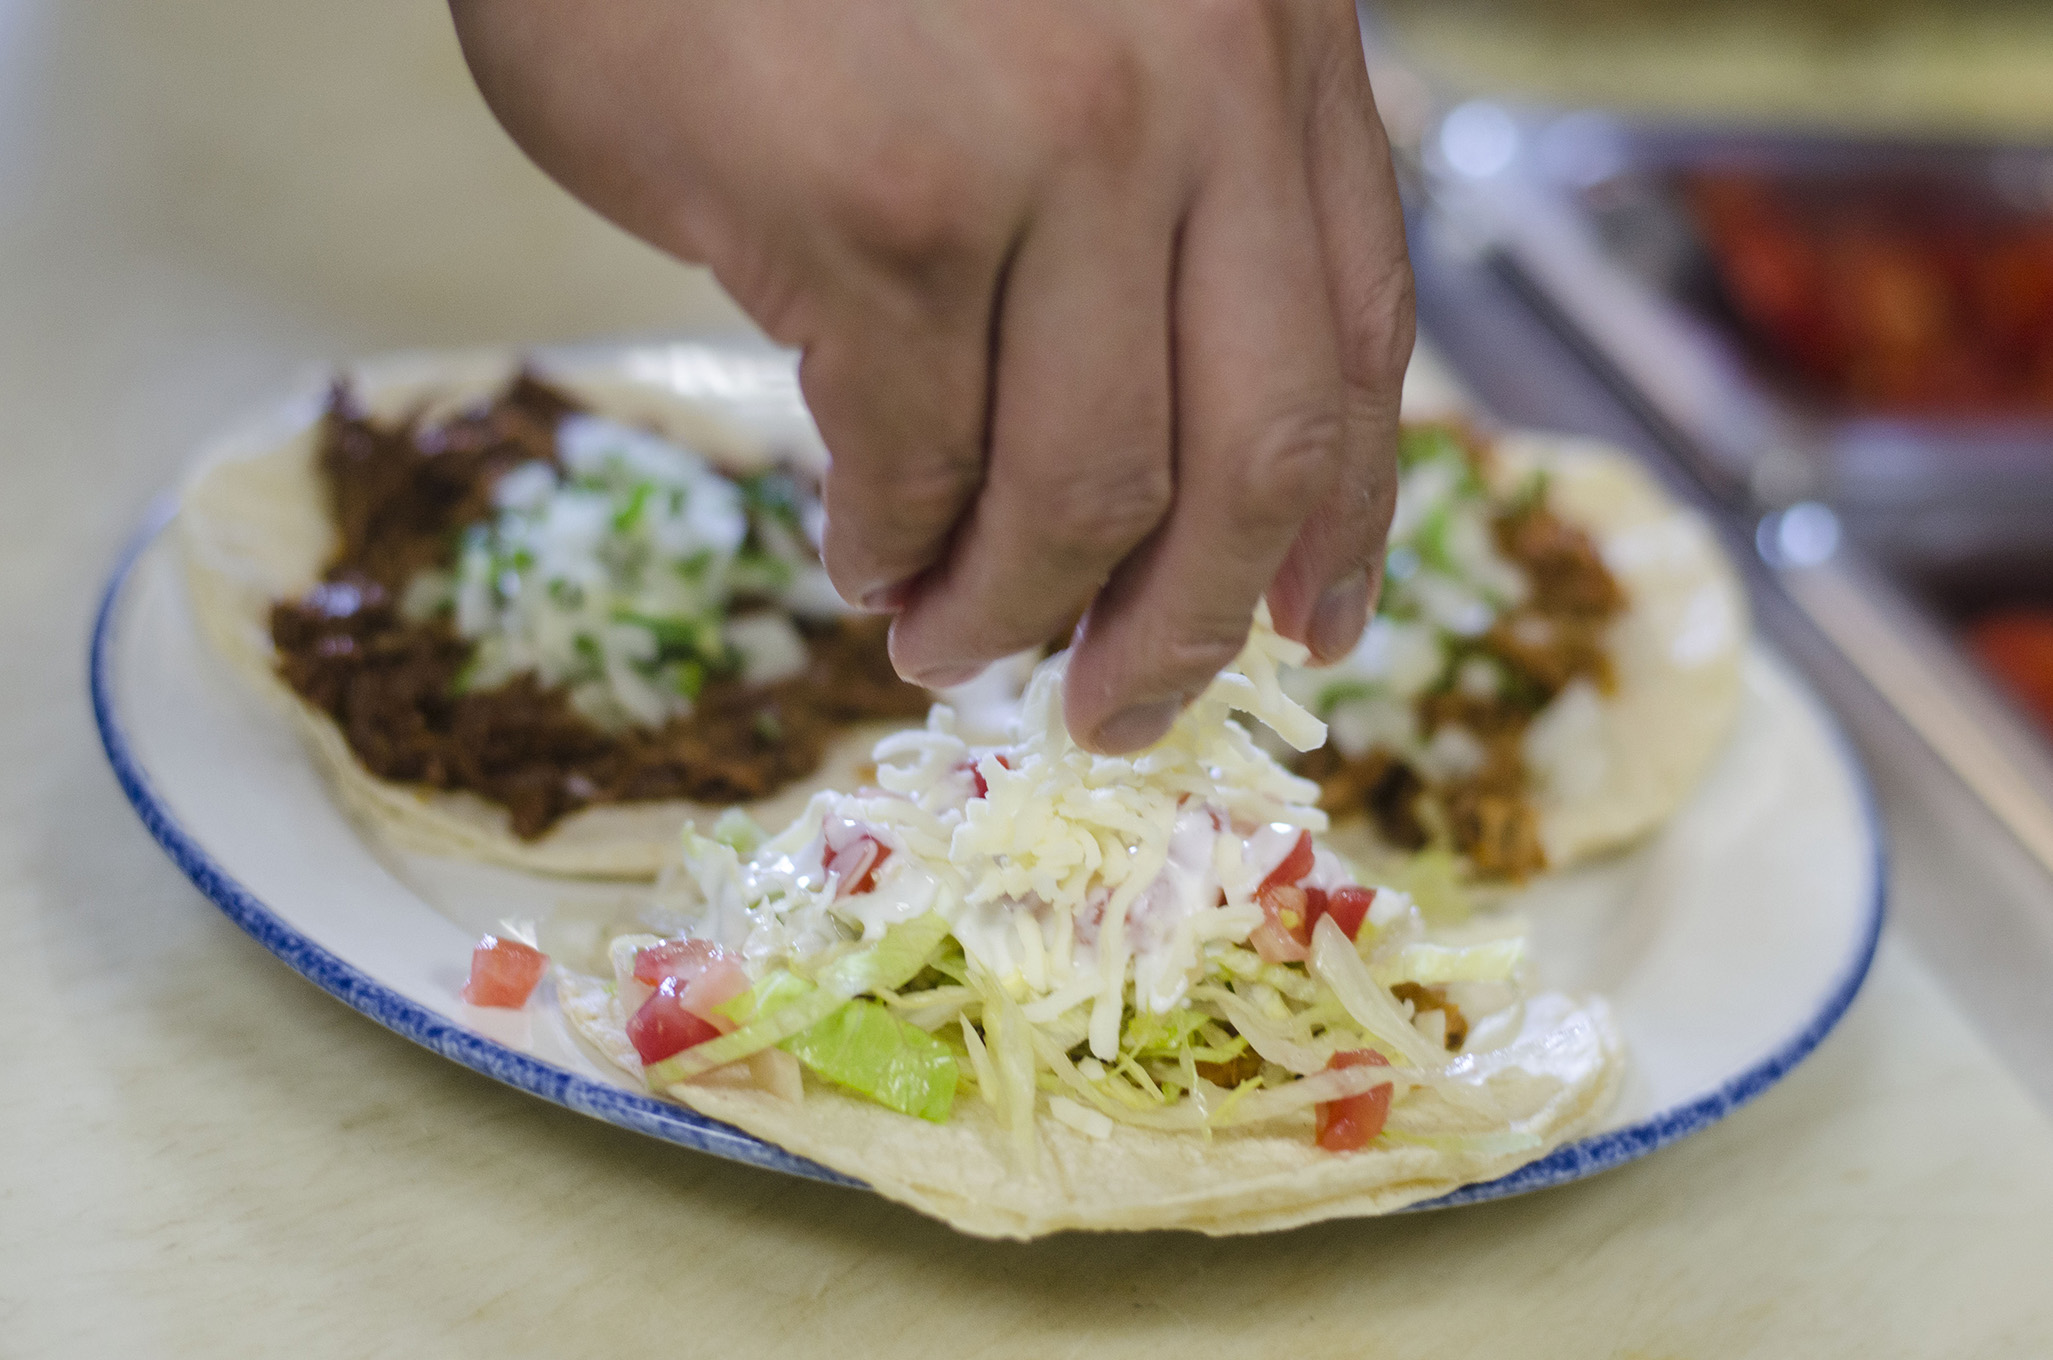 Putting the final touches on some tacos at Tacos Tony in Leamington, Ontario.